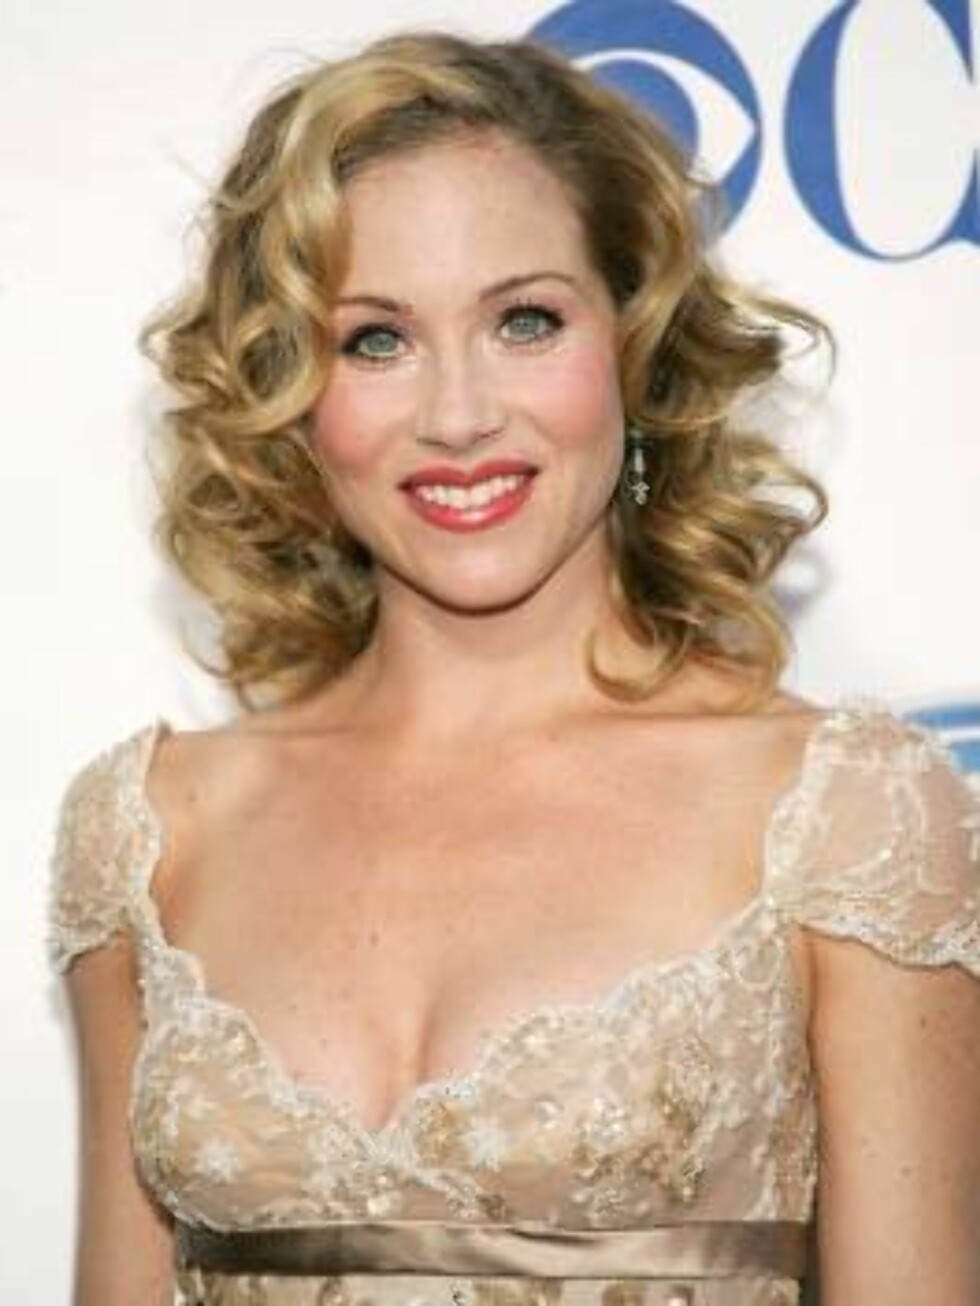 NEW YORK - JUNE 05:  (FILE PHOTO)  Actress Christina Applegate attends the 59th Annual Tony Awards at Radio City Music Hall June 5, 2005 in New York City. According to reports, Applegate and her husband, actor Johnathon Schaech, have filed for divorce aft Foto: All Over Press